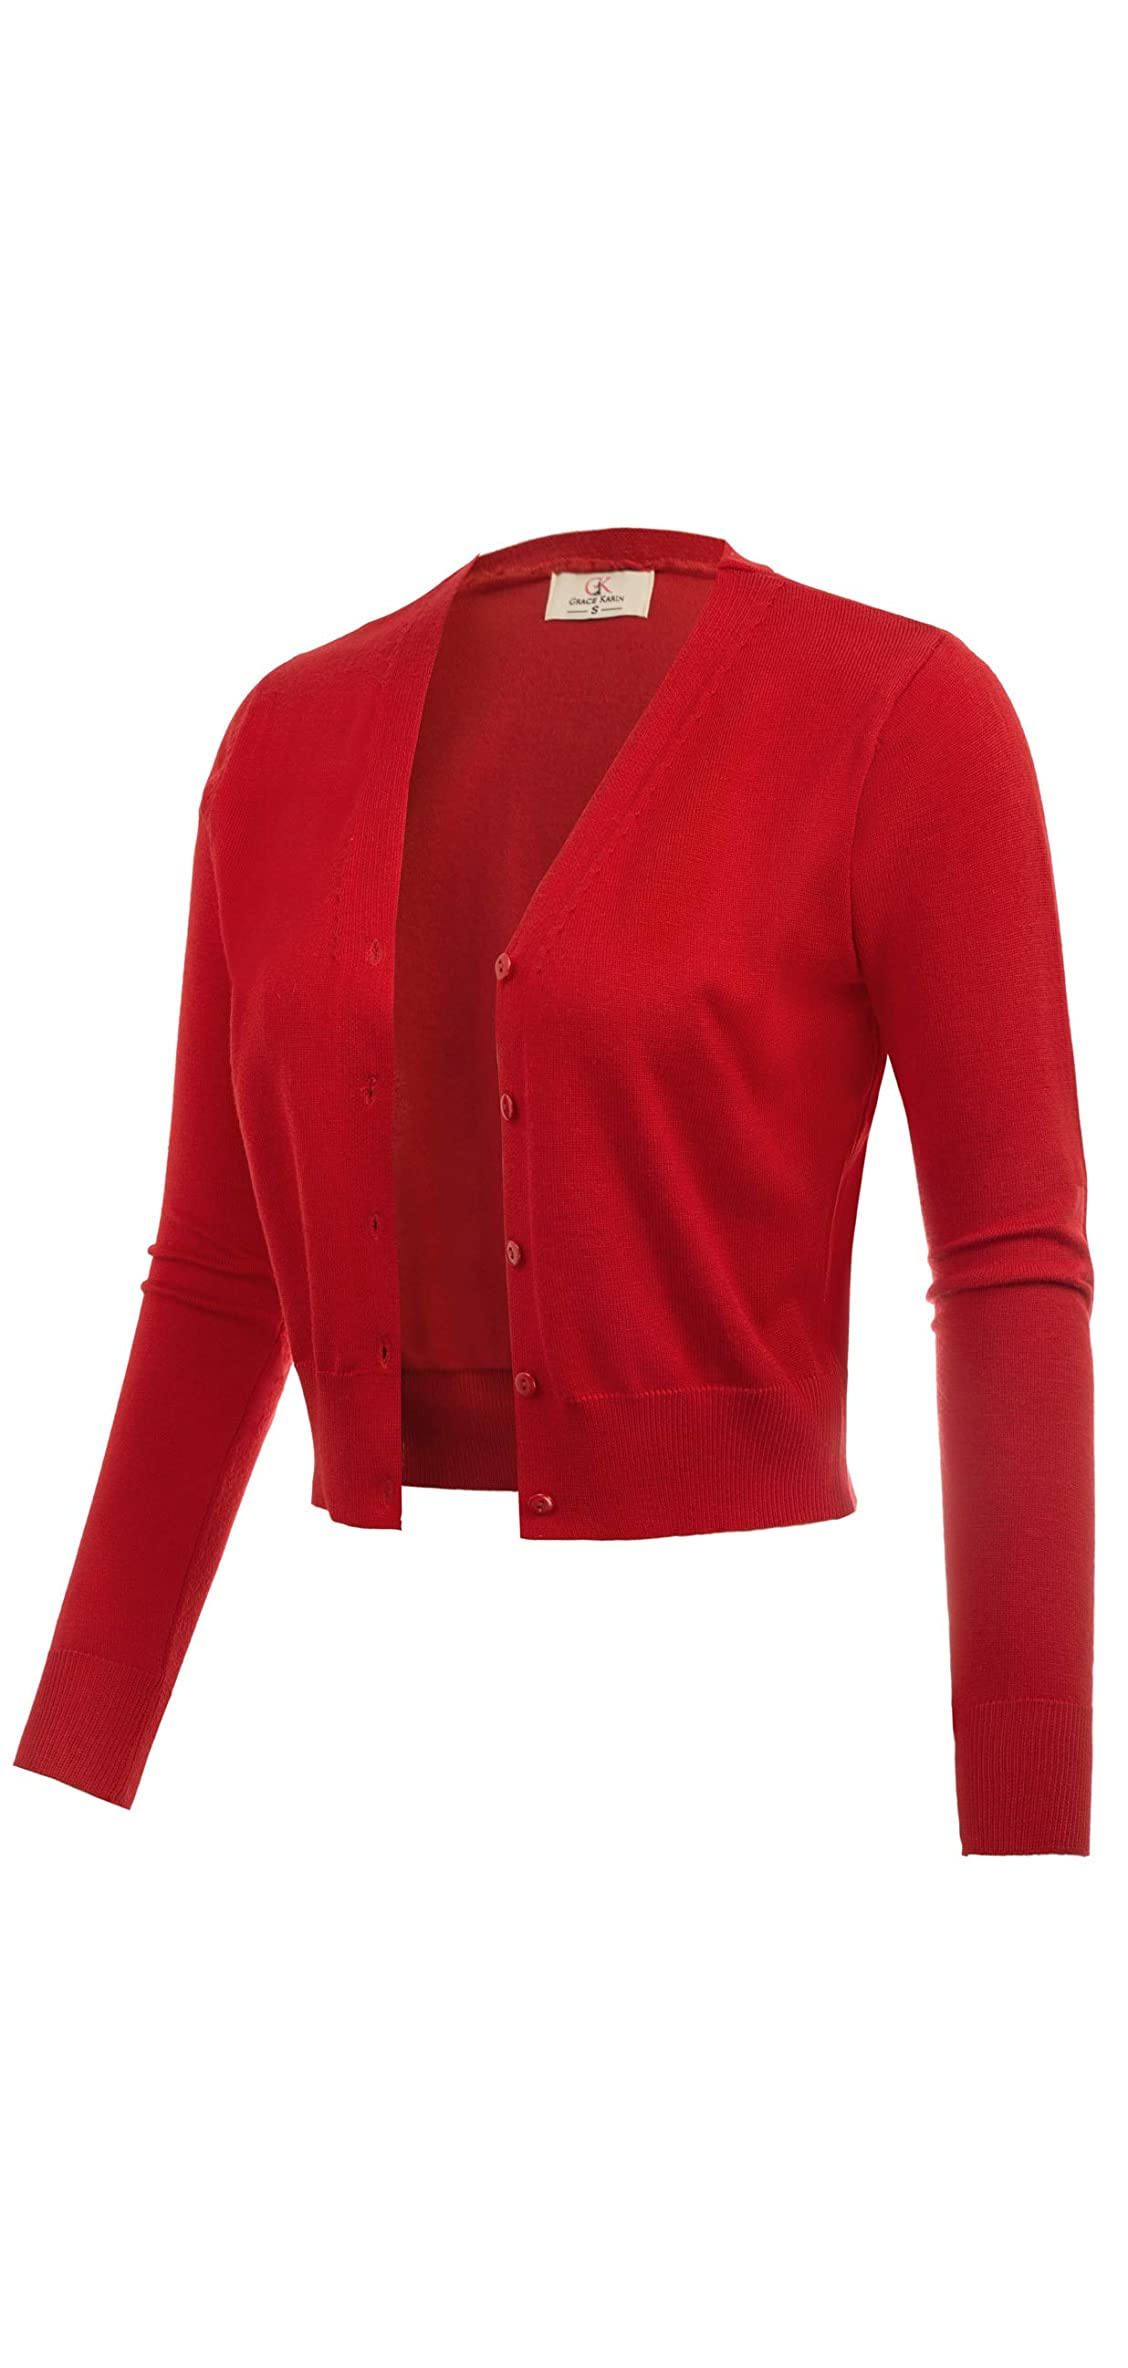 Women's Open Front Knit Cropped Bolero Shrug Sweater